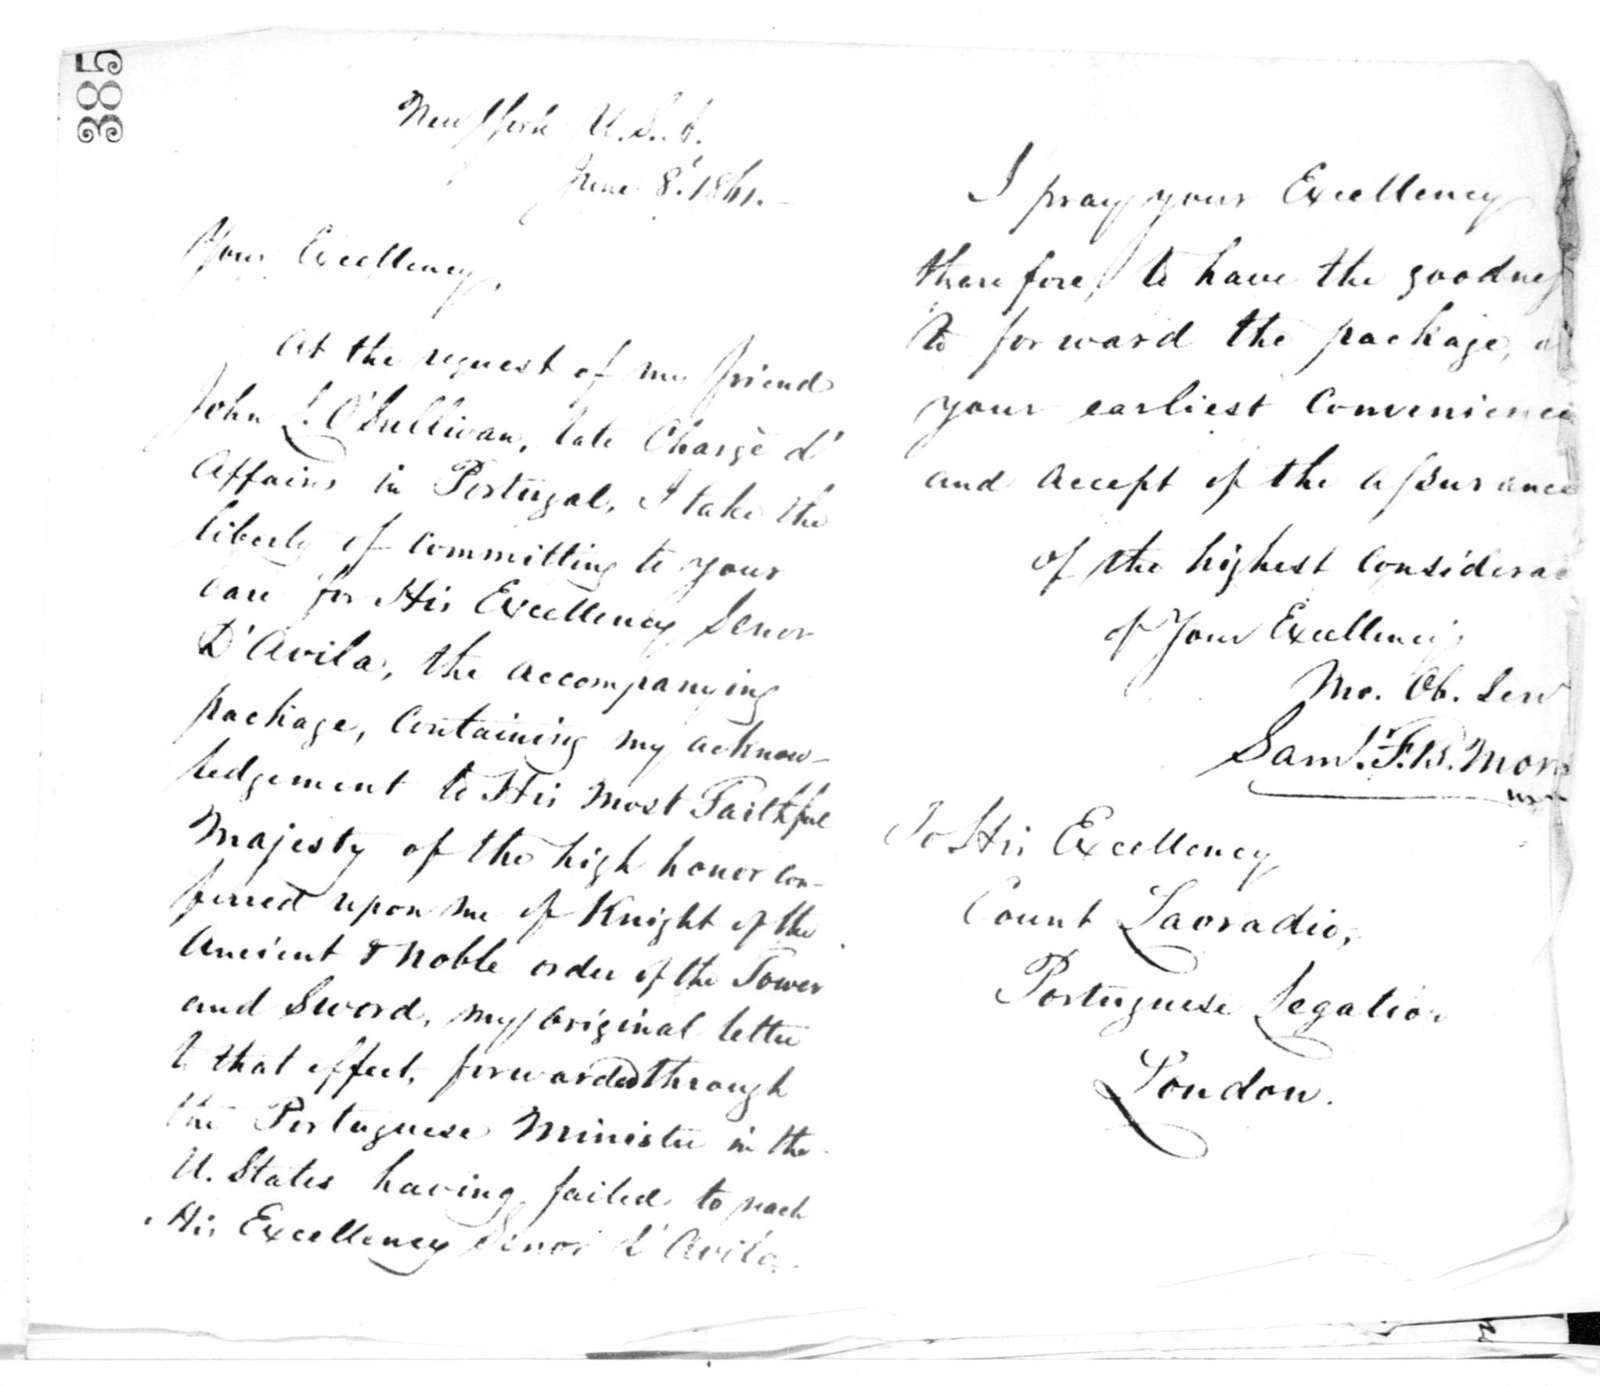 Letterbook---24 May 1860-18 February 1862